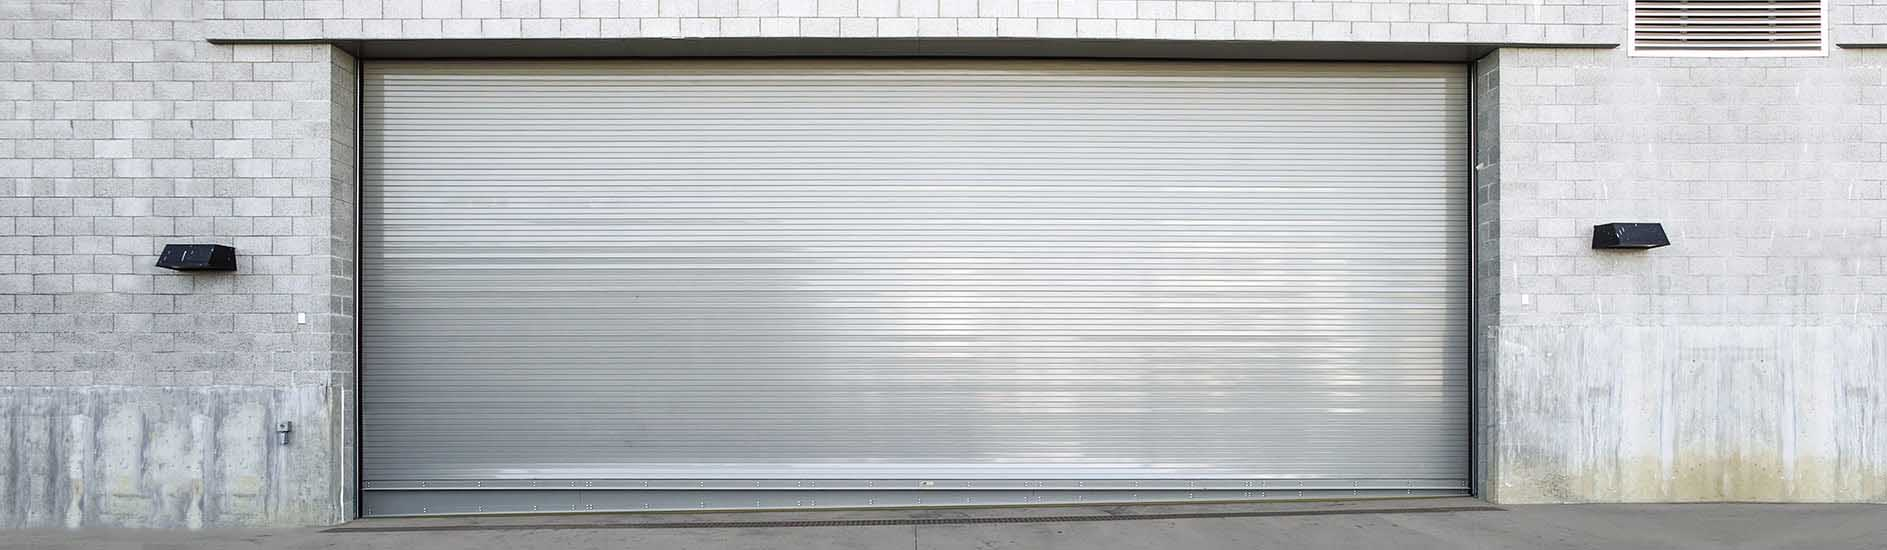 Rolling Service Door - model 800c & Rolling Steel Doors | Industrial and Commercial